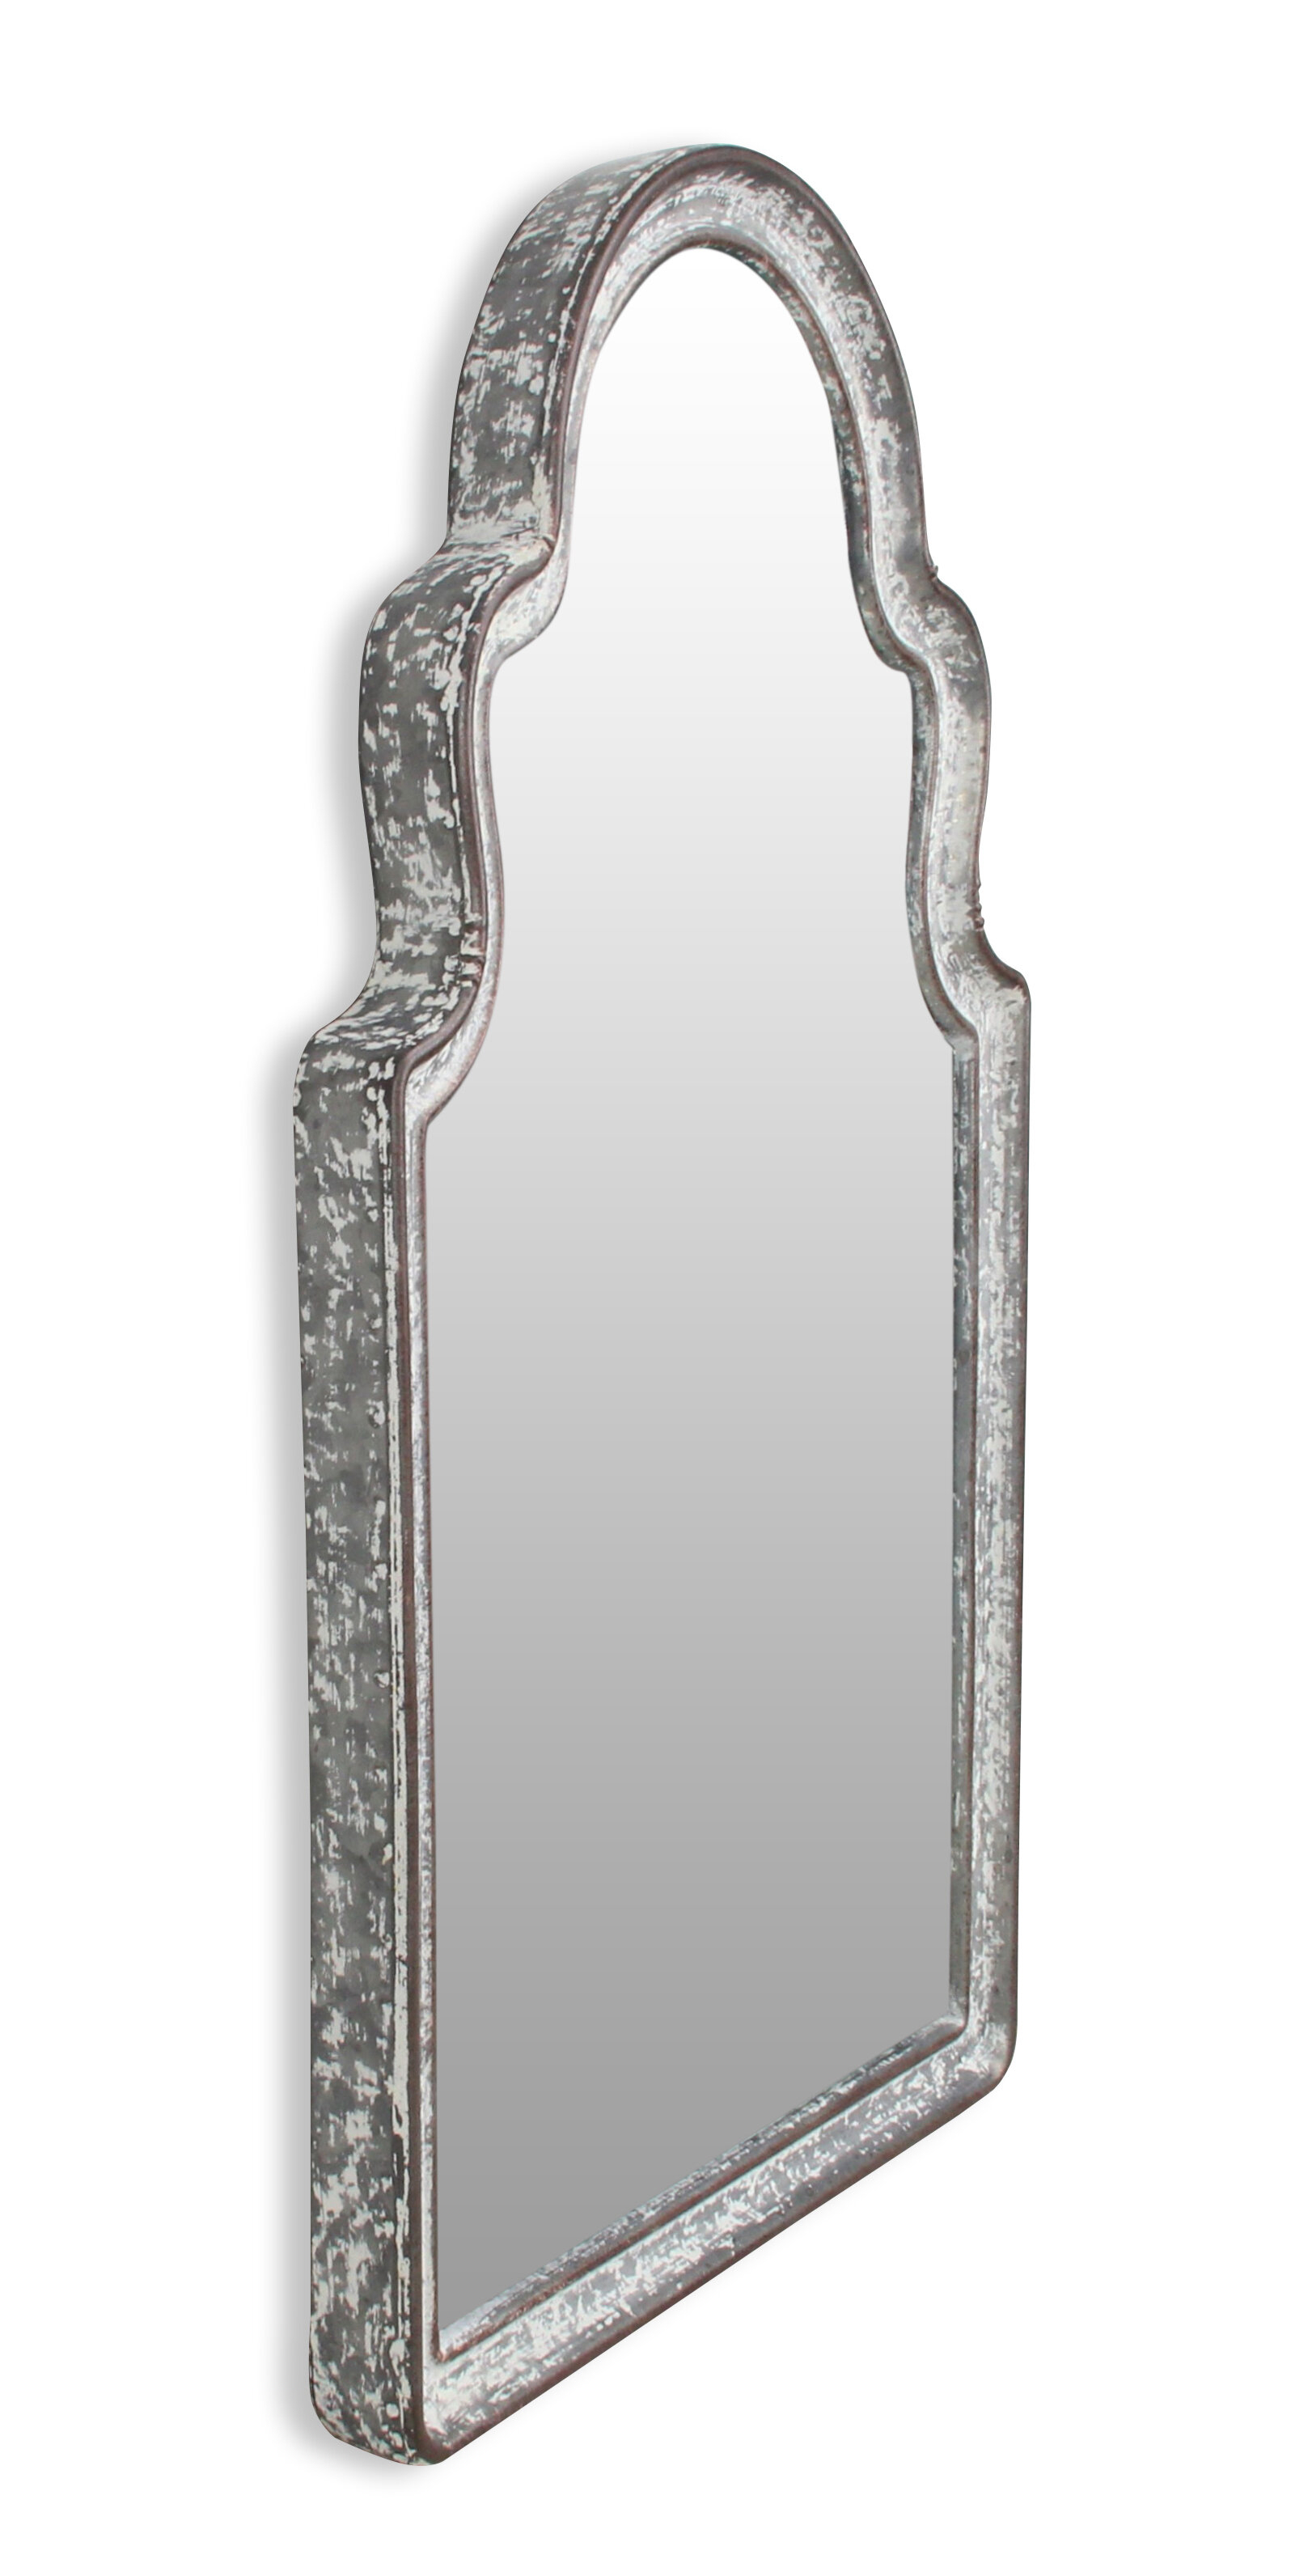 Brysen Industrial Accent Mirror Intended For Morlan Accent Mirrors (View 17 of 20)